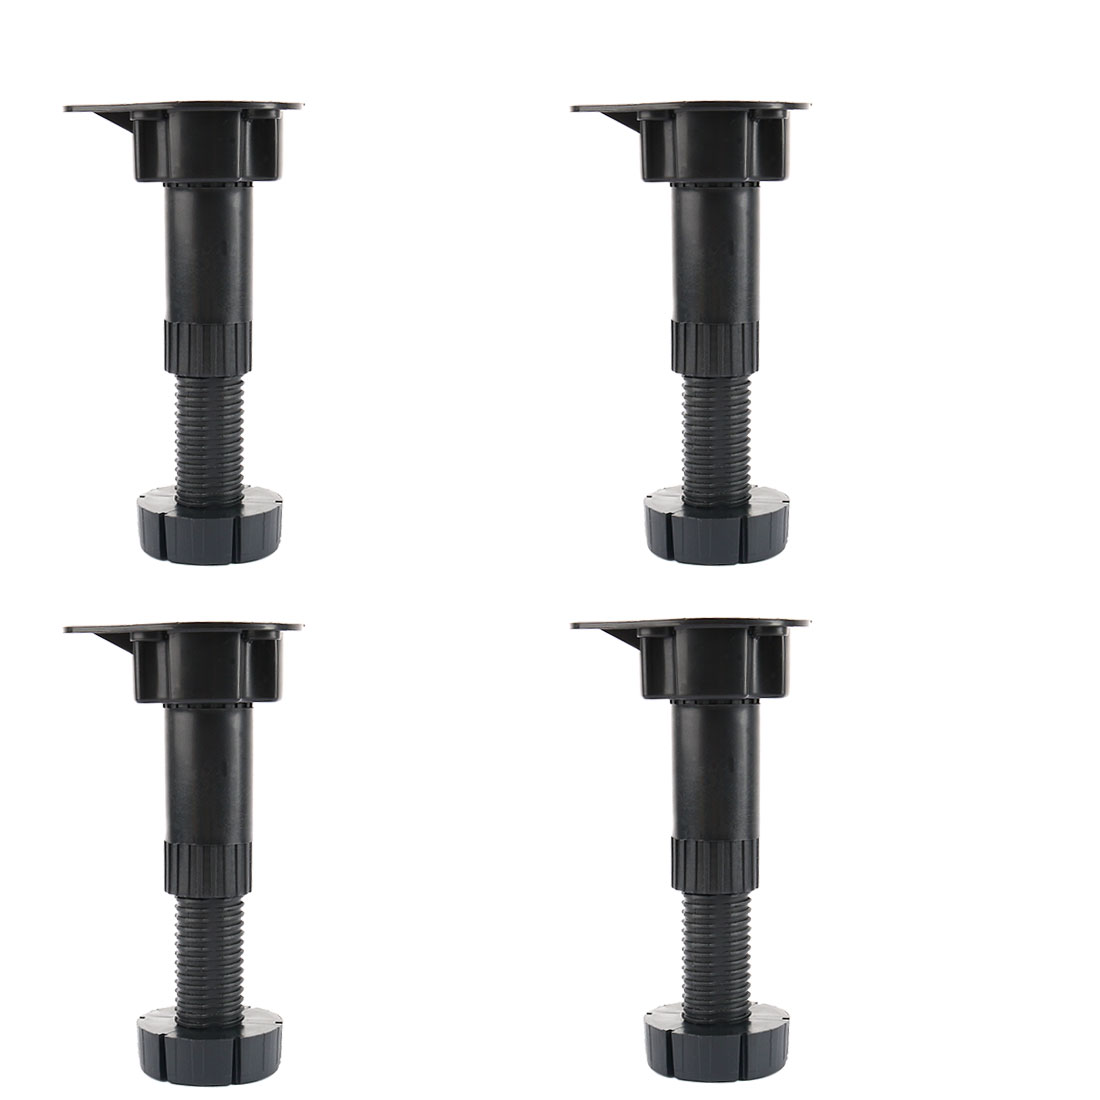 Black Adjustable Height Cabinet Cupboard Leg Foot for Kitchen Bathroom